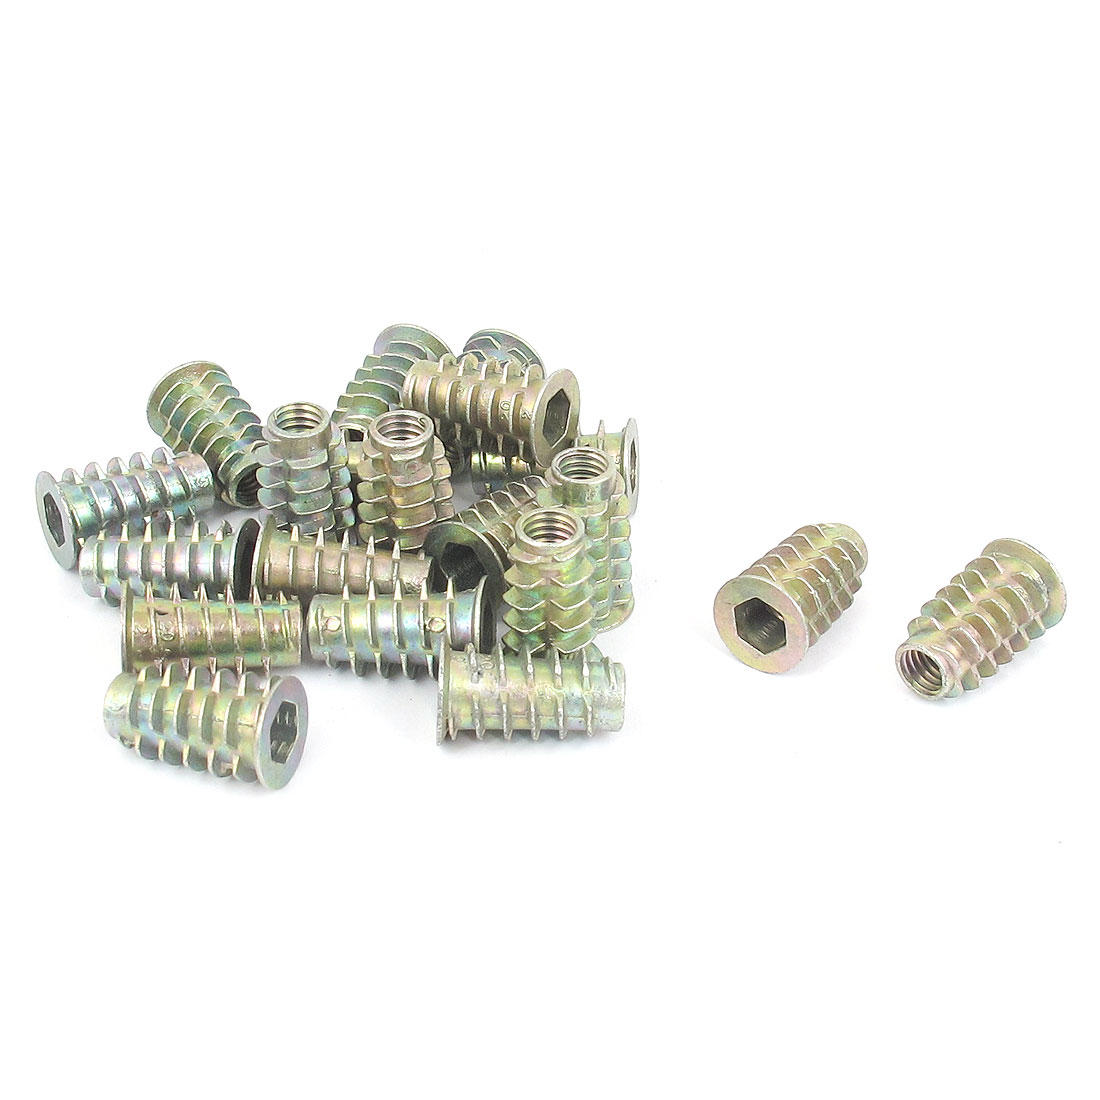 20 Pcs M6x20mm Zinc Plated Hex Socket Screw in Thread Insert Nut for Wood